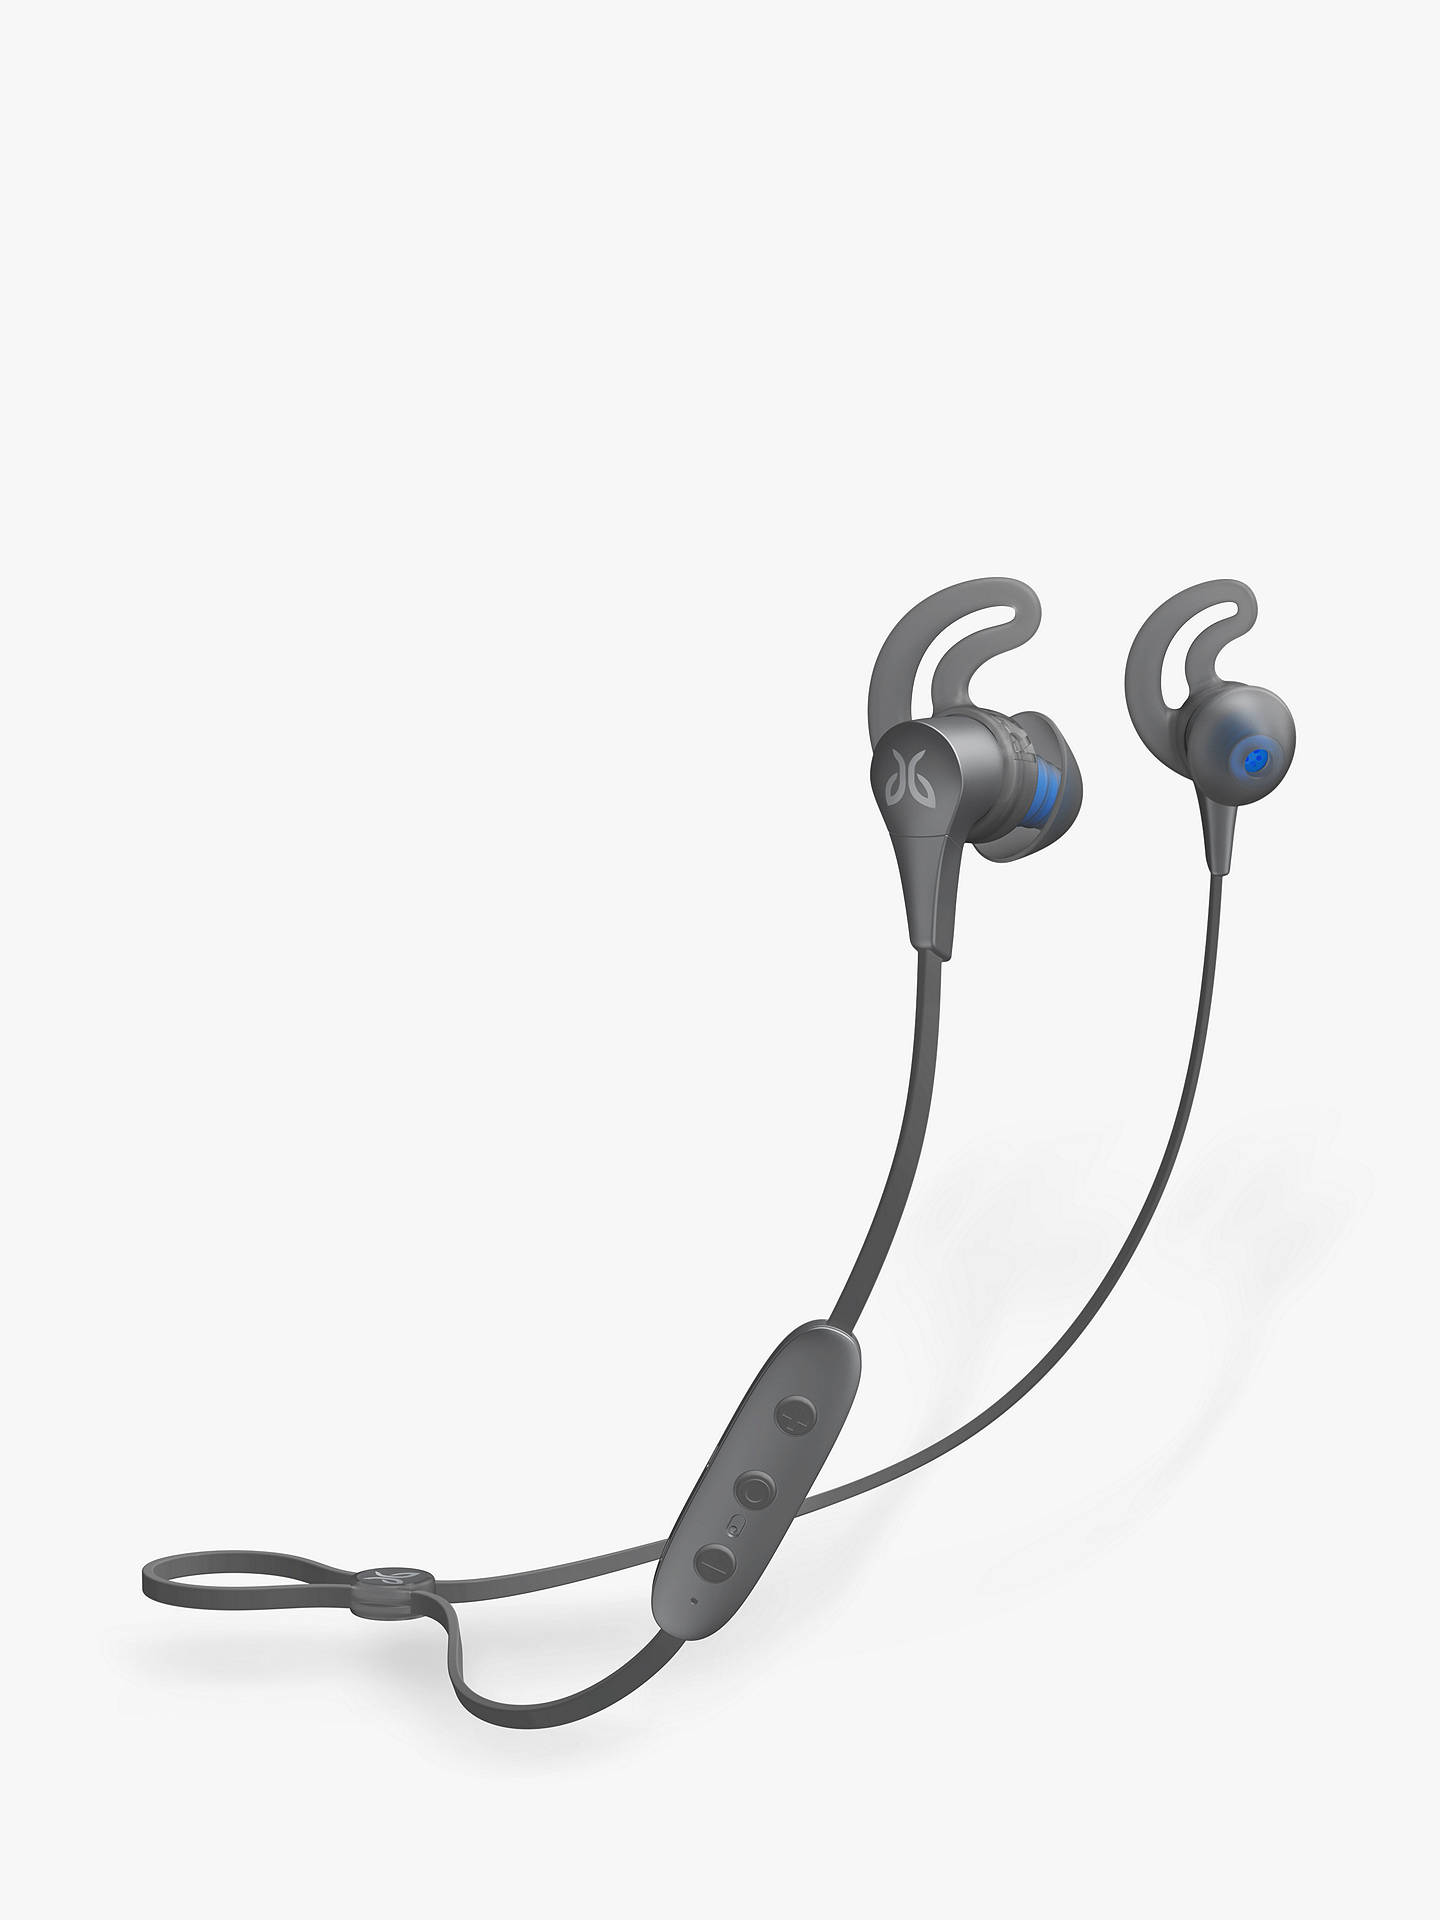 Buy Jaybird X4 Sweat & Weather-Proof Bluetooth Wireless In-Ear Headphones with Mic/Remote, Storm Metallic Glacier Online at johnlewis.com